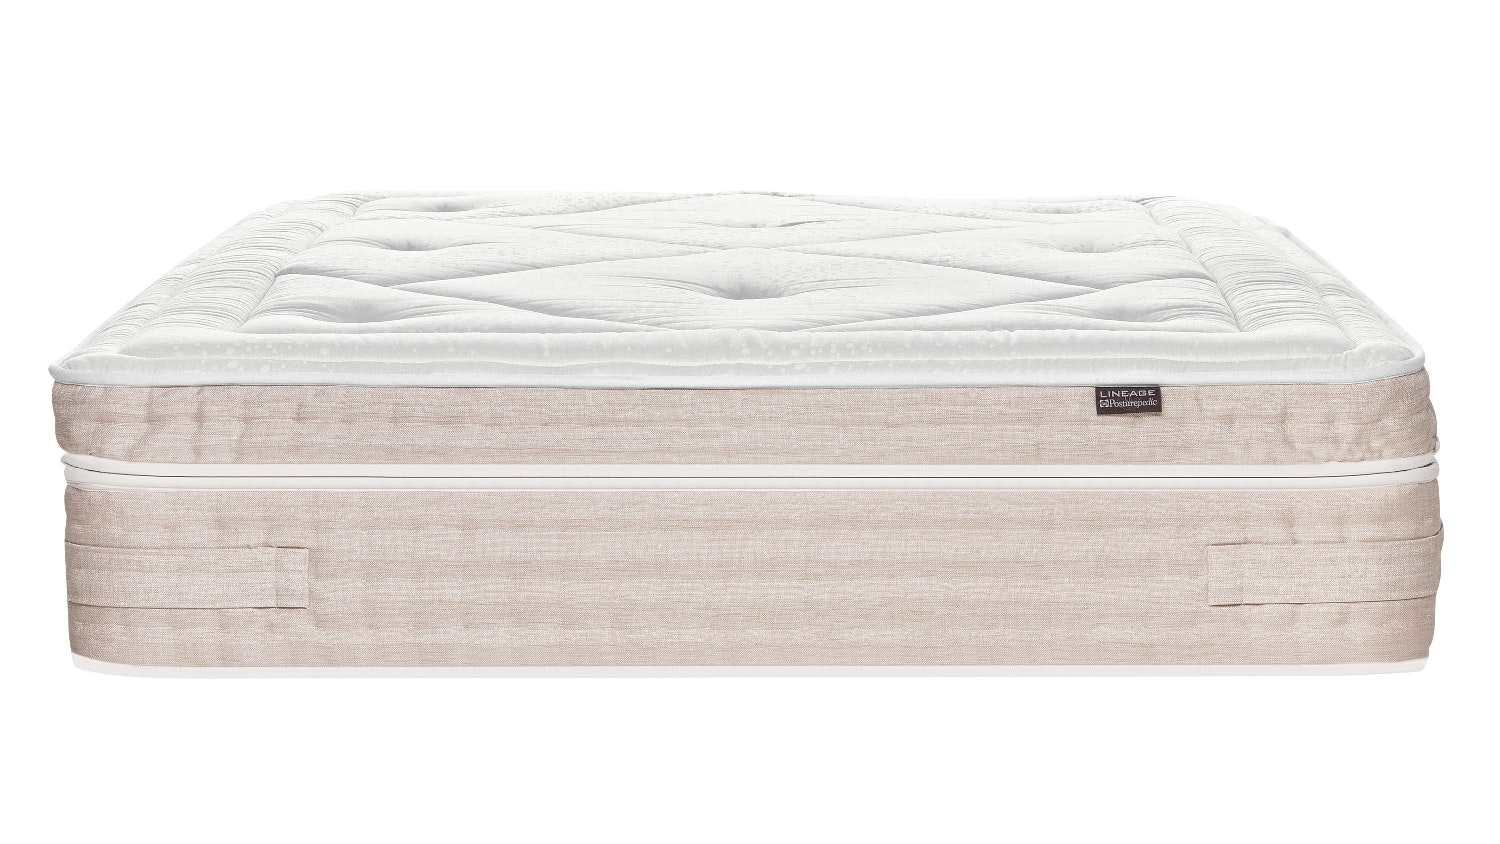 Sealy Crown Jewel Nouvelle Plush Gardenia Mattress